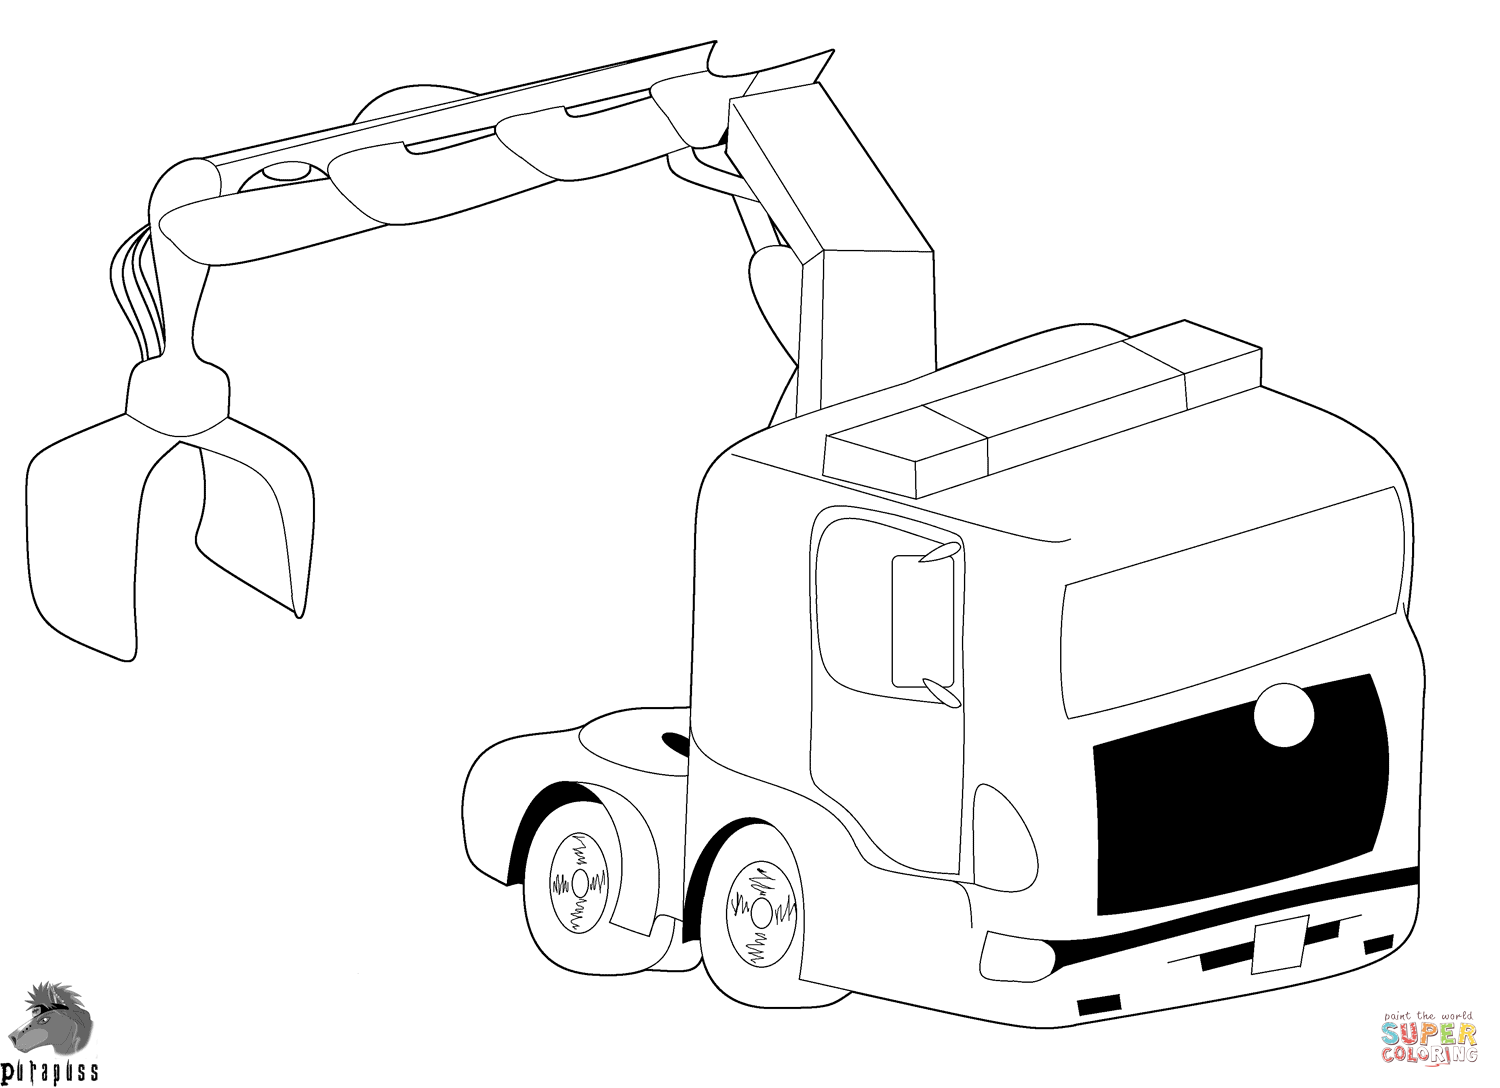 Crane coloring #7, Download drawings